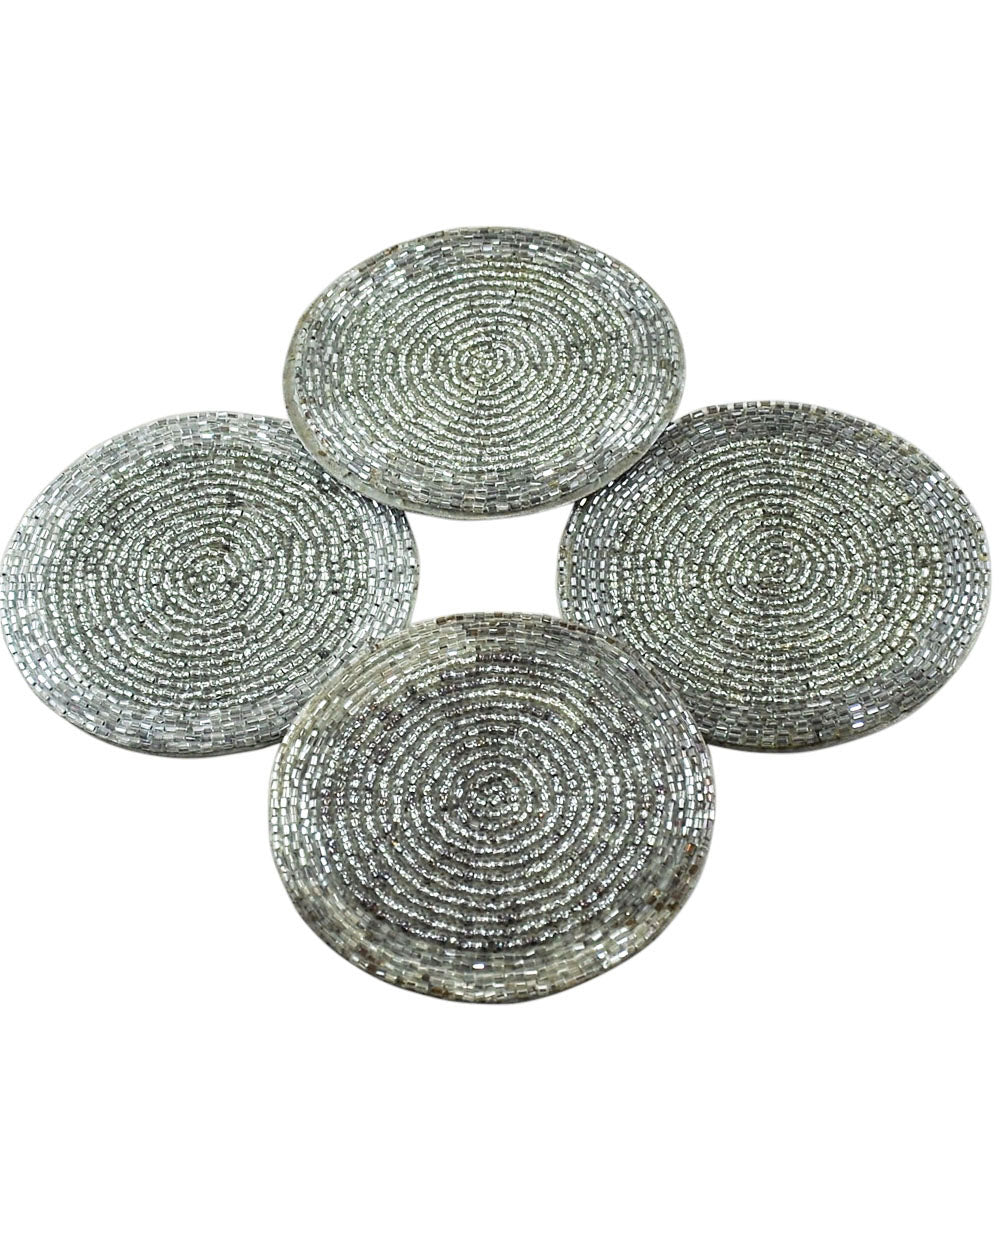 Silver Beaded Coaster Set of 4